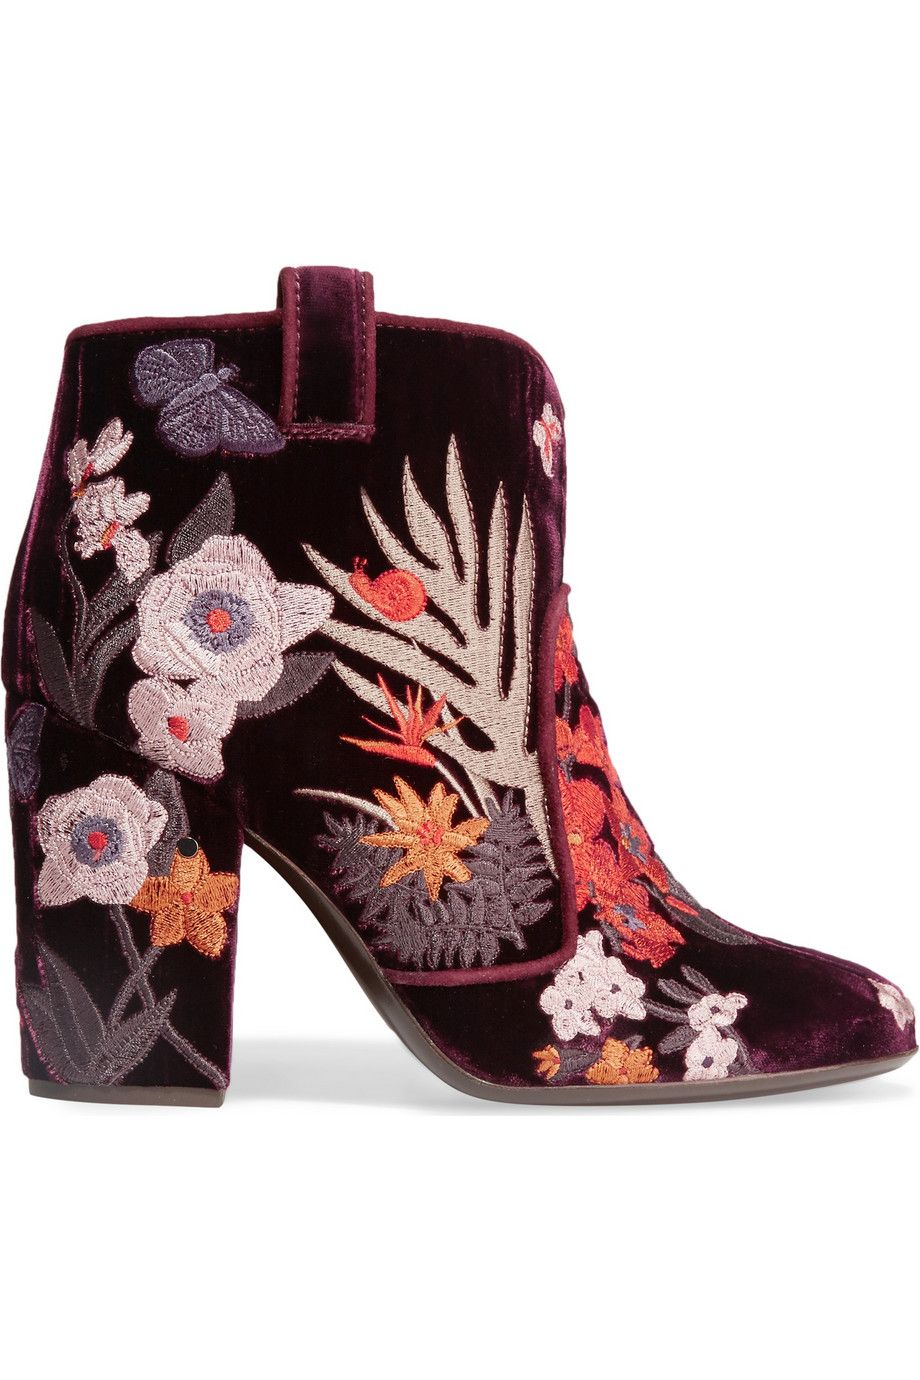 Laurence Dacade Pete Embroidered Velvet Booties footlocker cheap online exclusive sale online visit clearance online amazon SuZLPFf